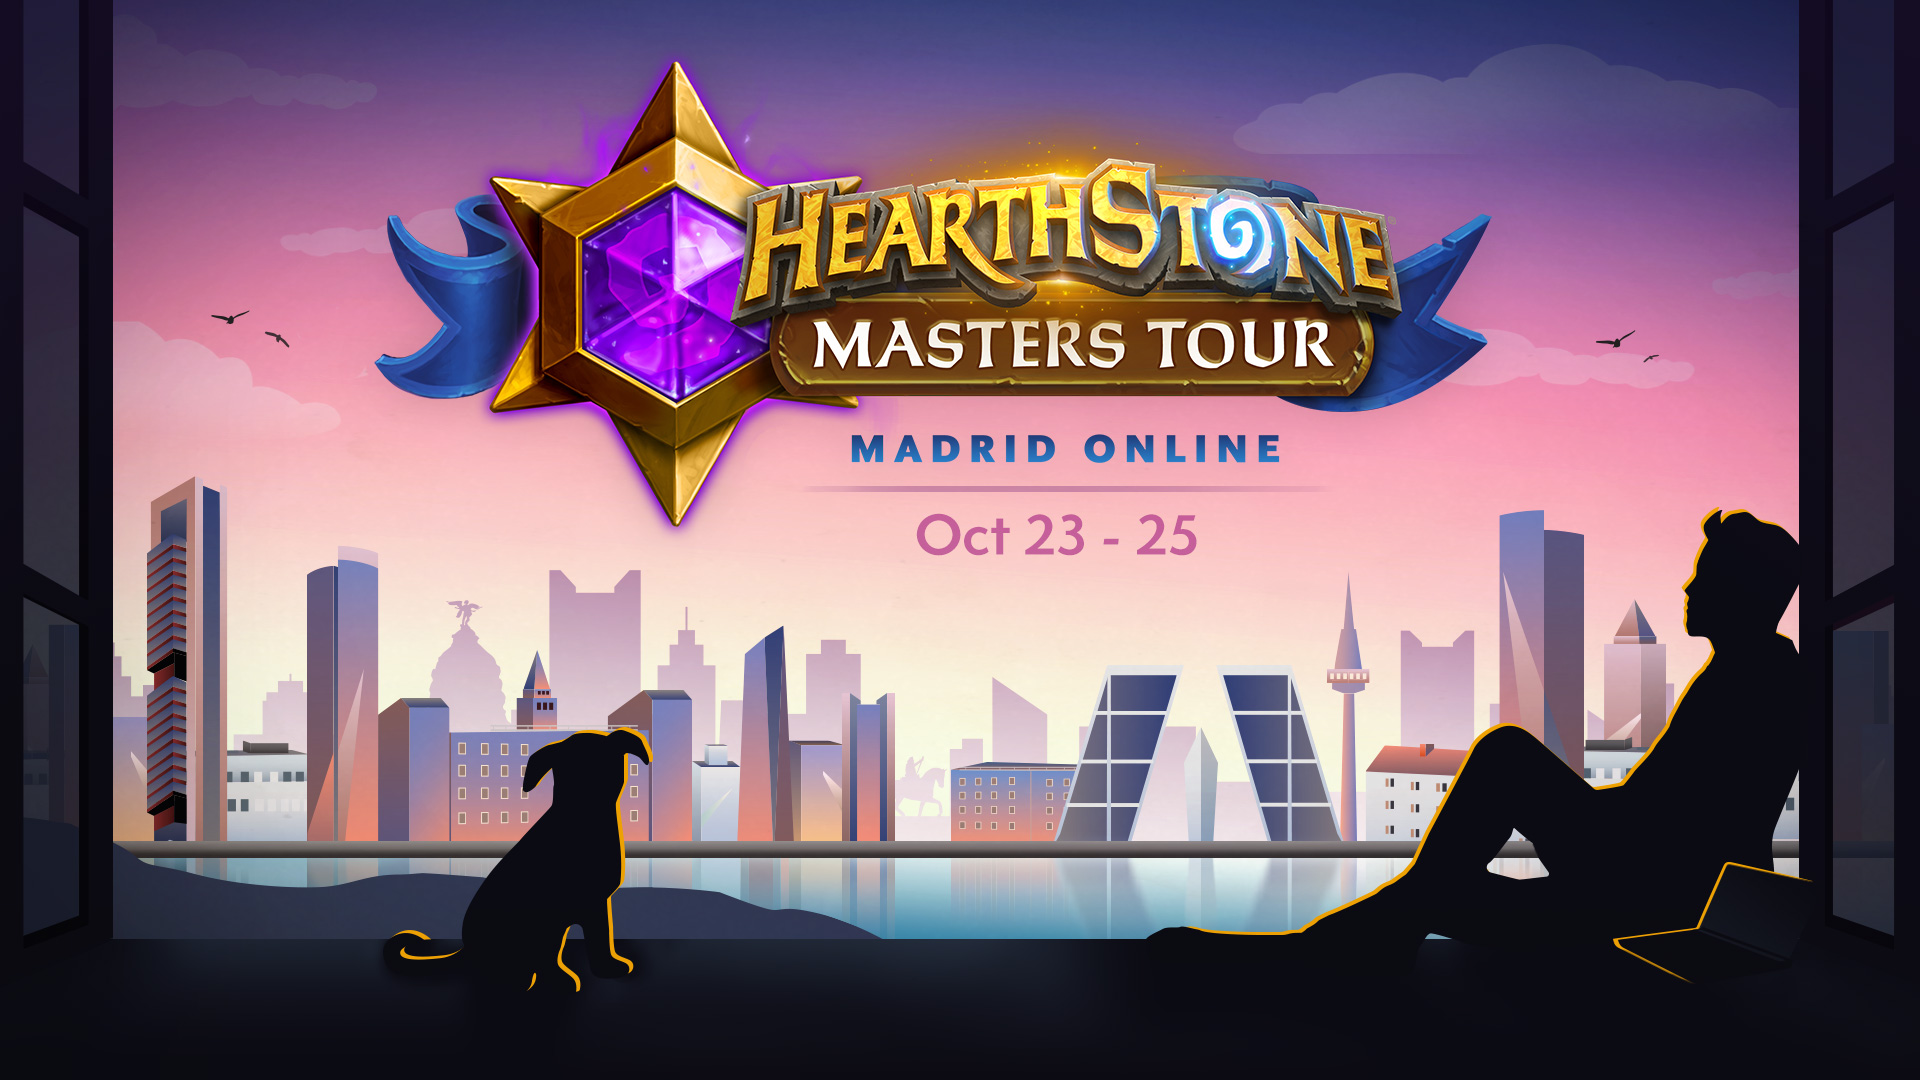 Hearthstone Masters Tour Online: Madrid Viewer's Guide